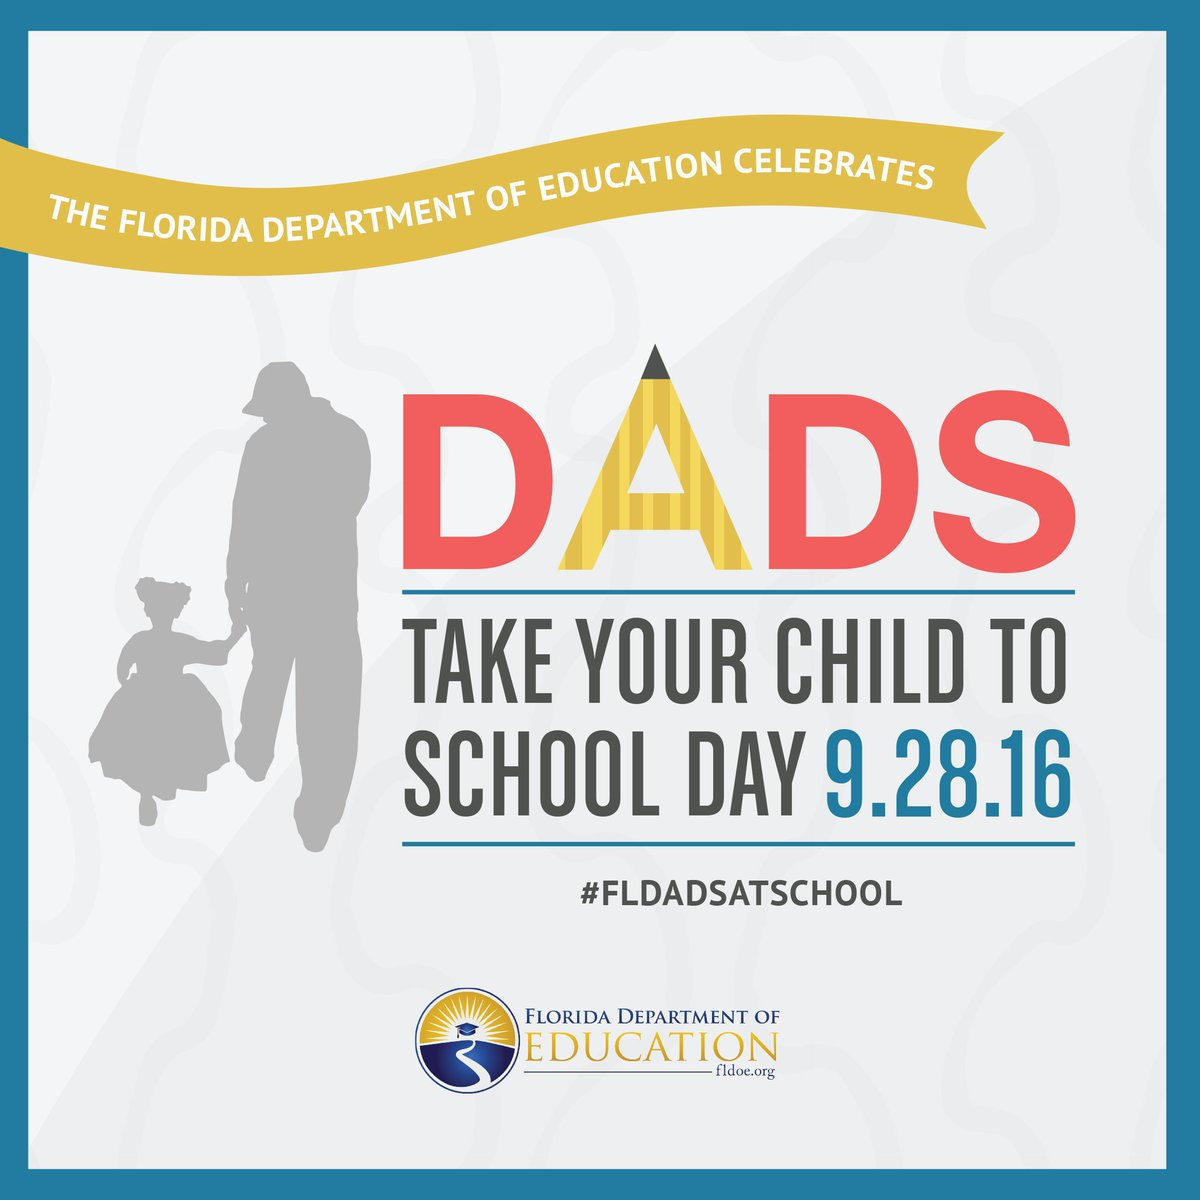 #FLFamilies 9/28/16 is #FLDadsatSchoolDay! Fathers, grandfathers & other male role models are invited to take part! https://t.co/TSf5kGAy9N